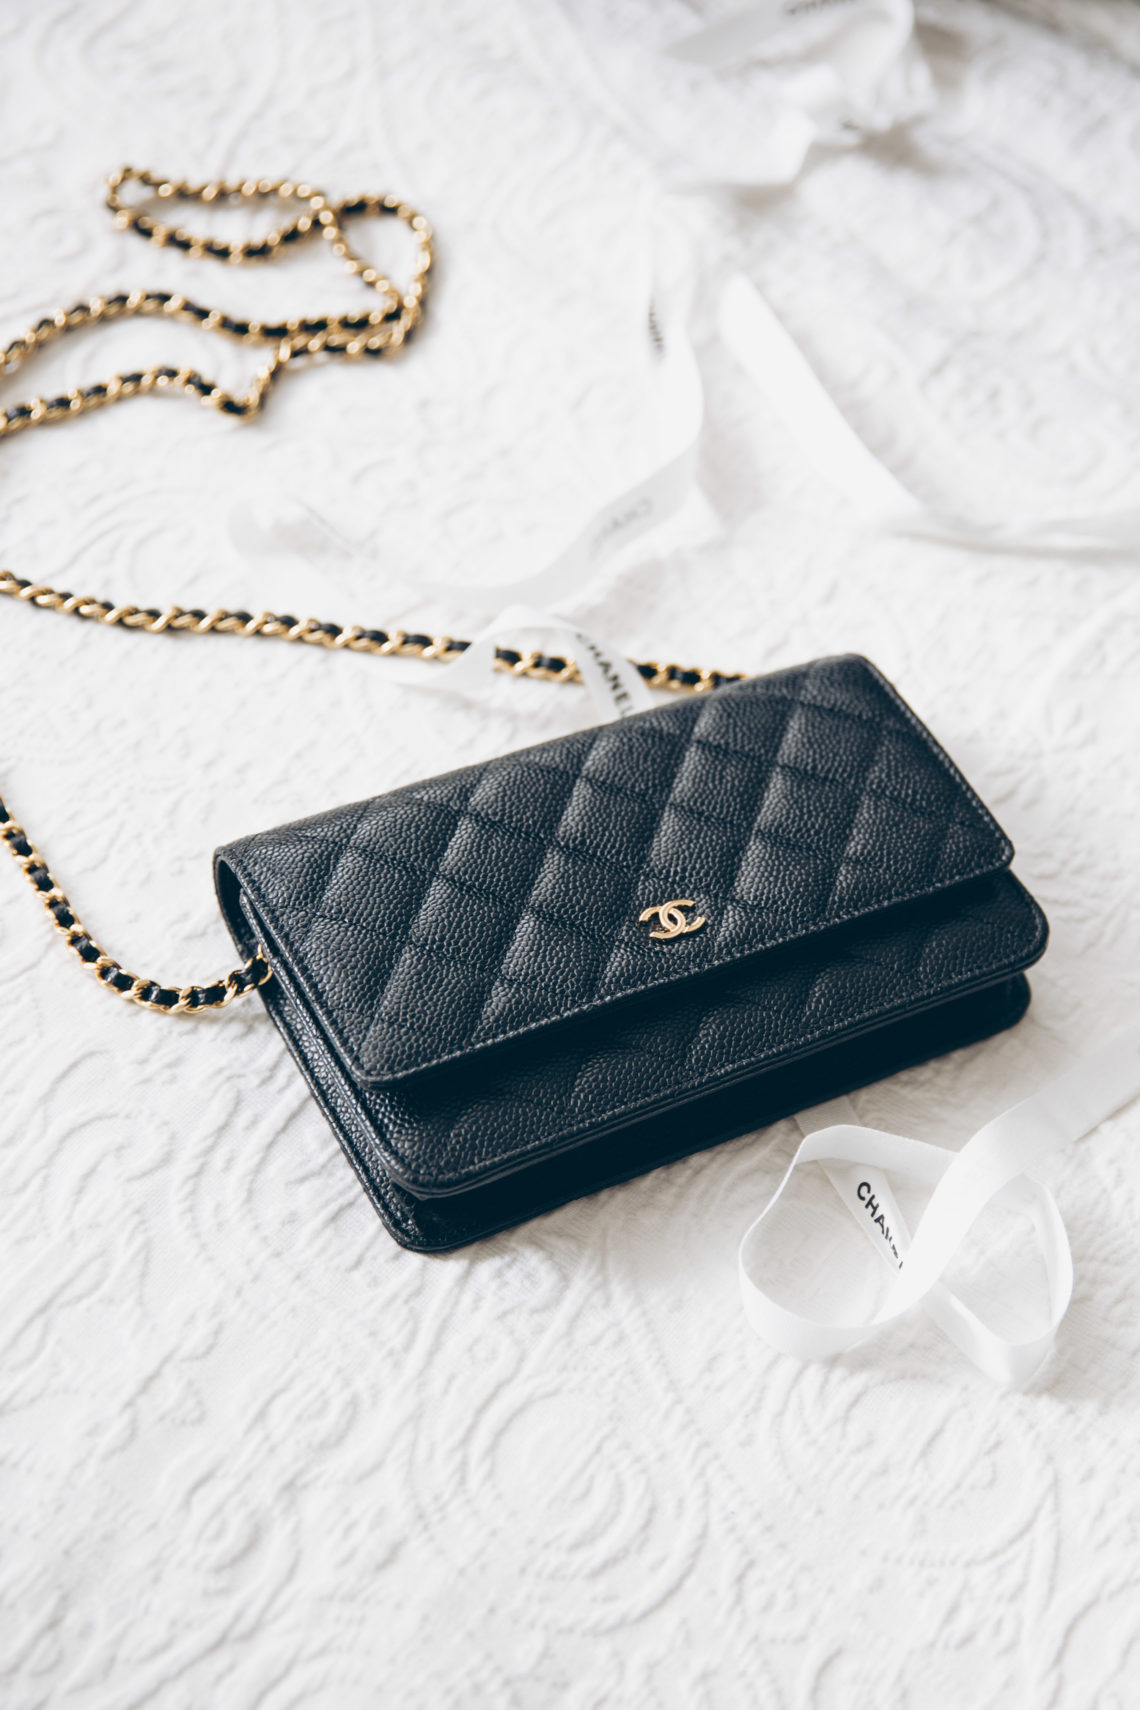 e5d82f6f0338 Review: Chanel Wallet On Chain WOC | you rock my life